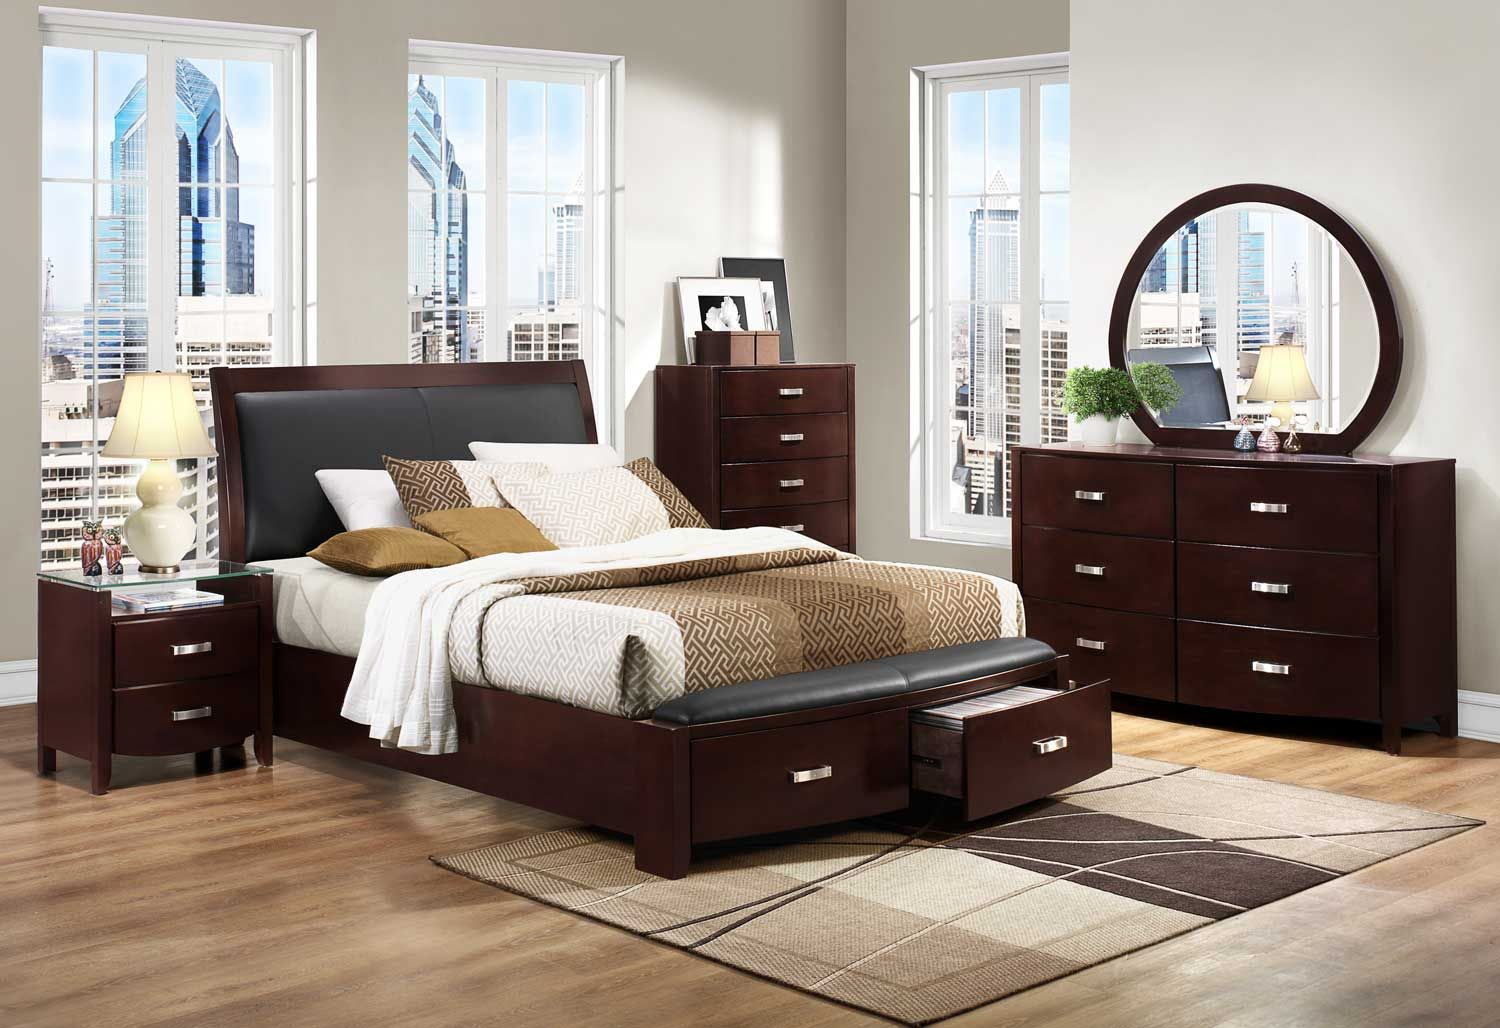 Homelegance Lyric Platform Bedroom Set   Dark Espresso $1,931.00